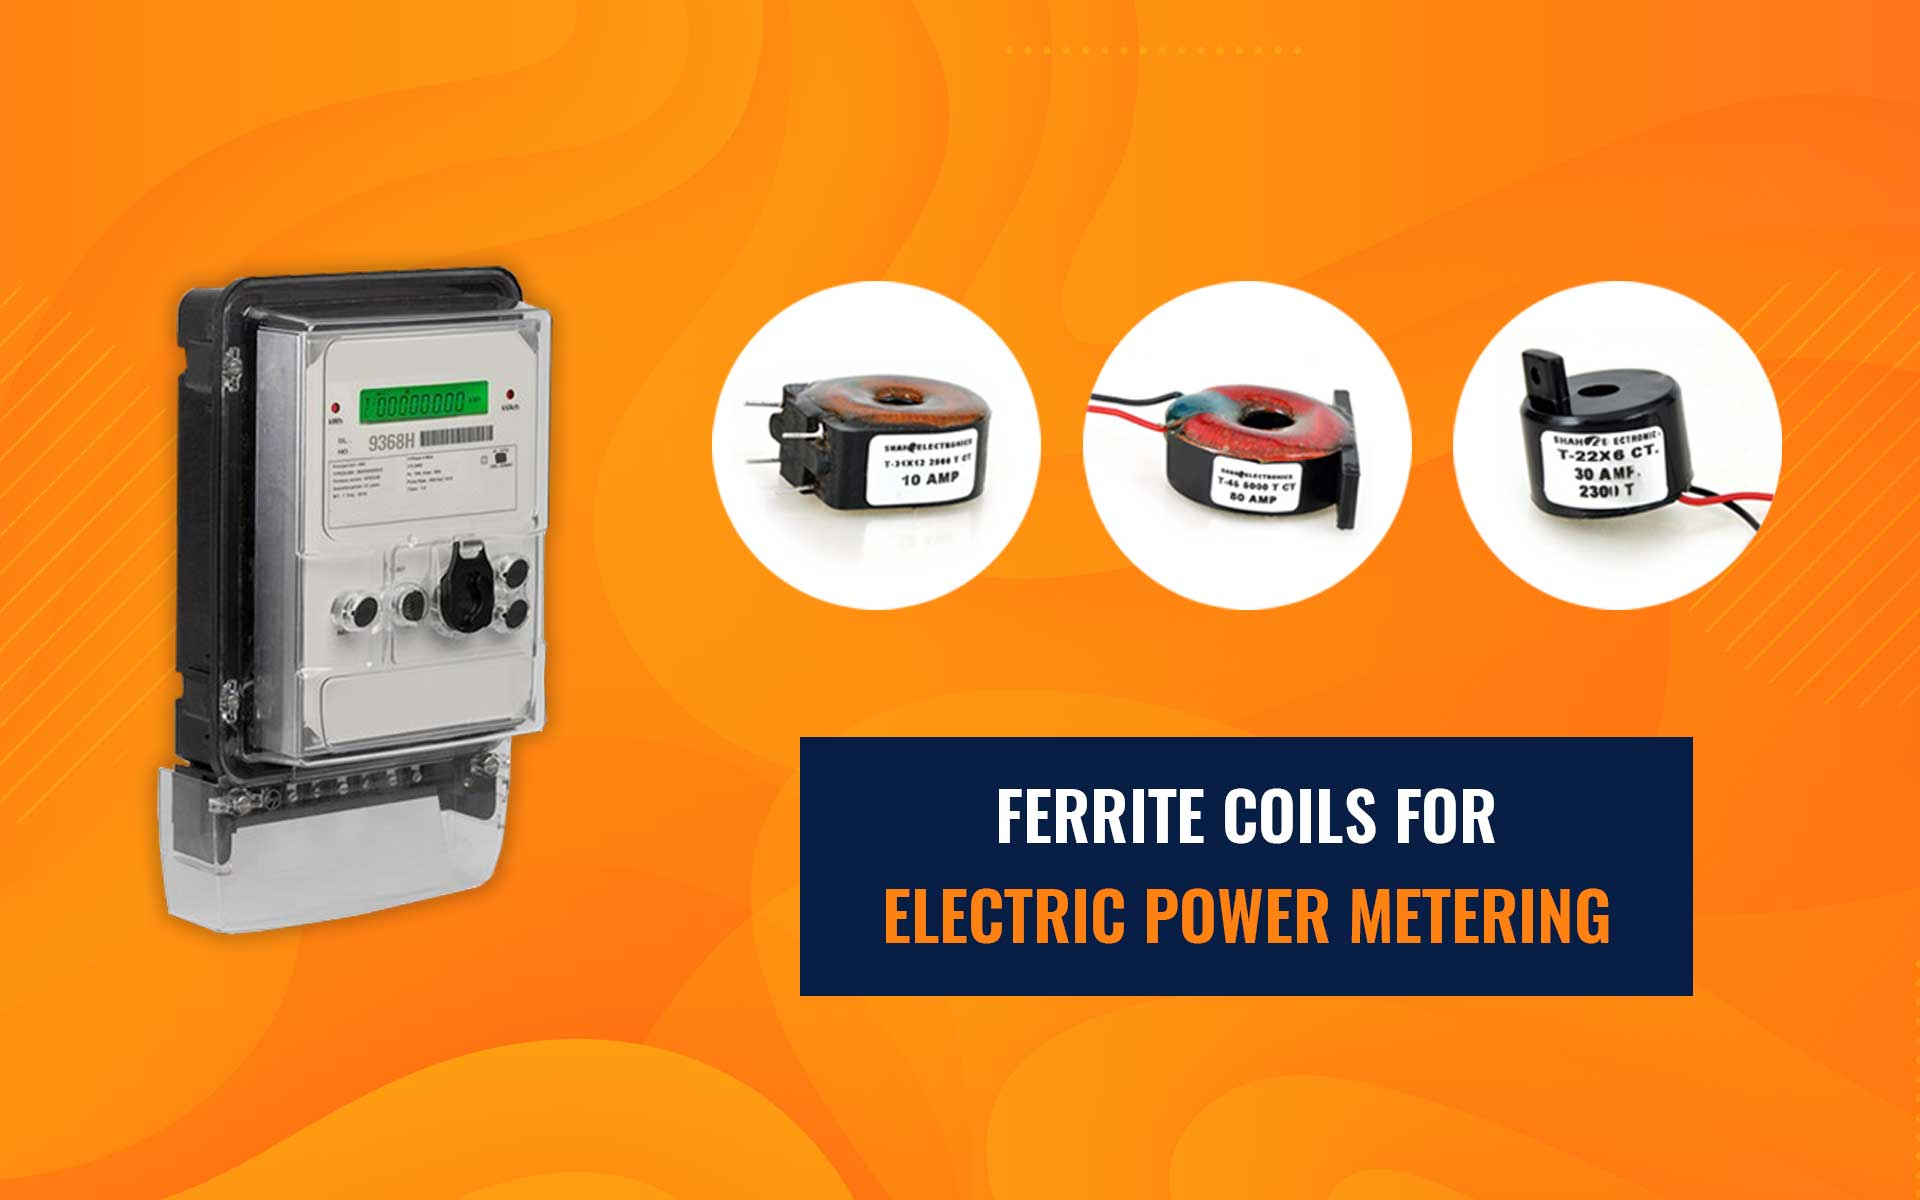 Ferrite Coils for Electric Power Metering